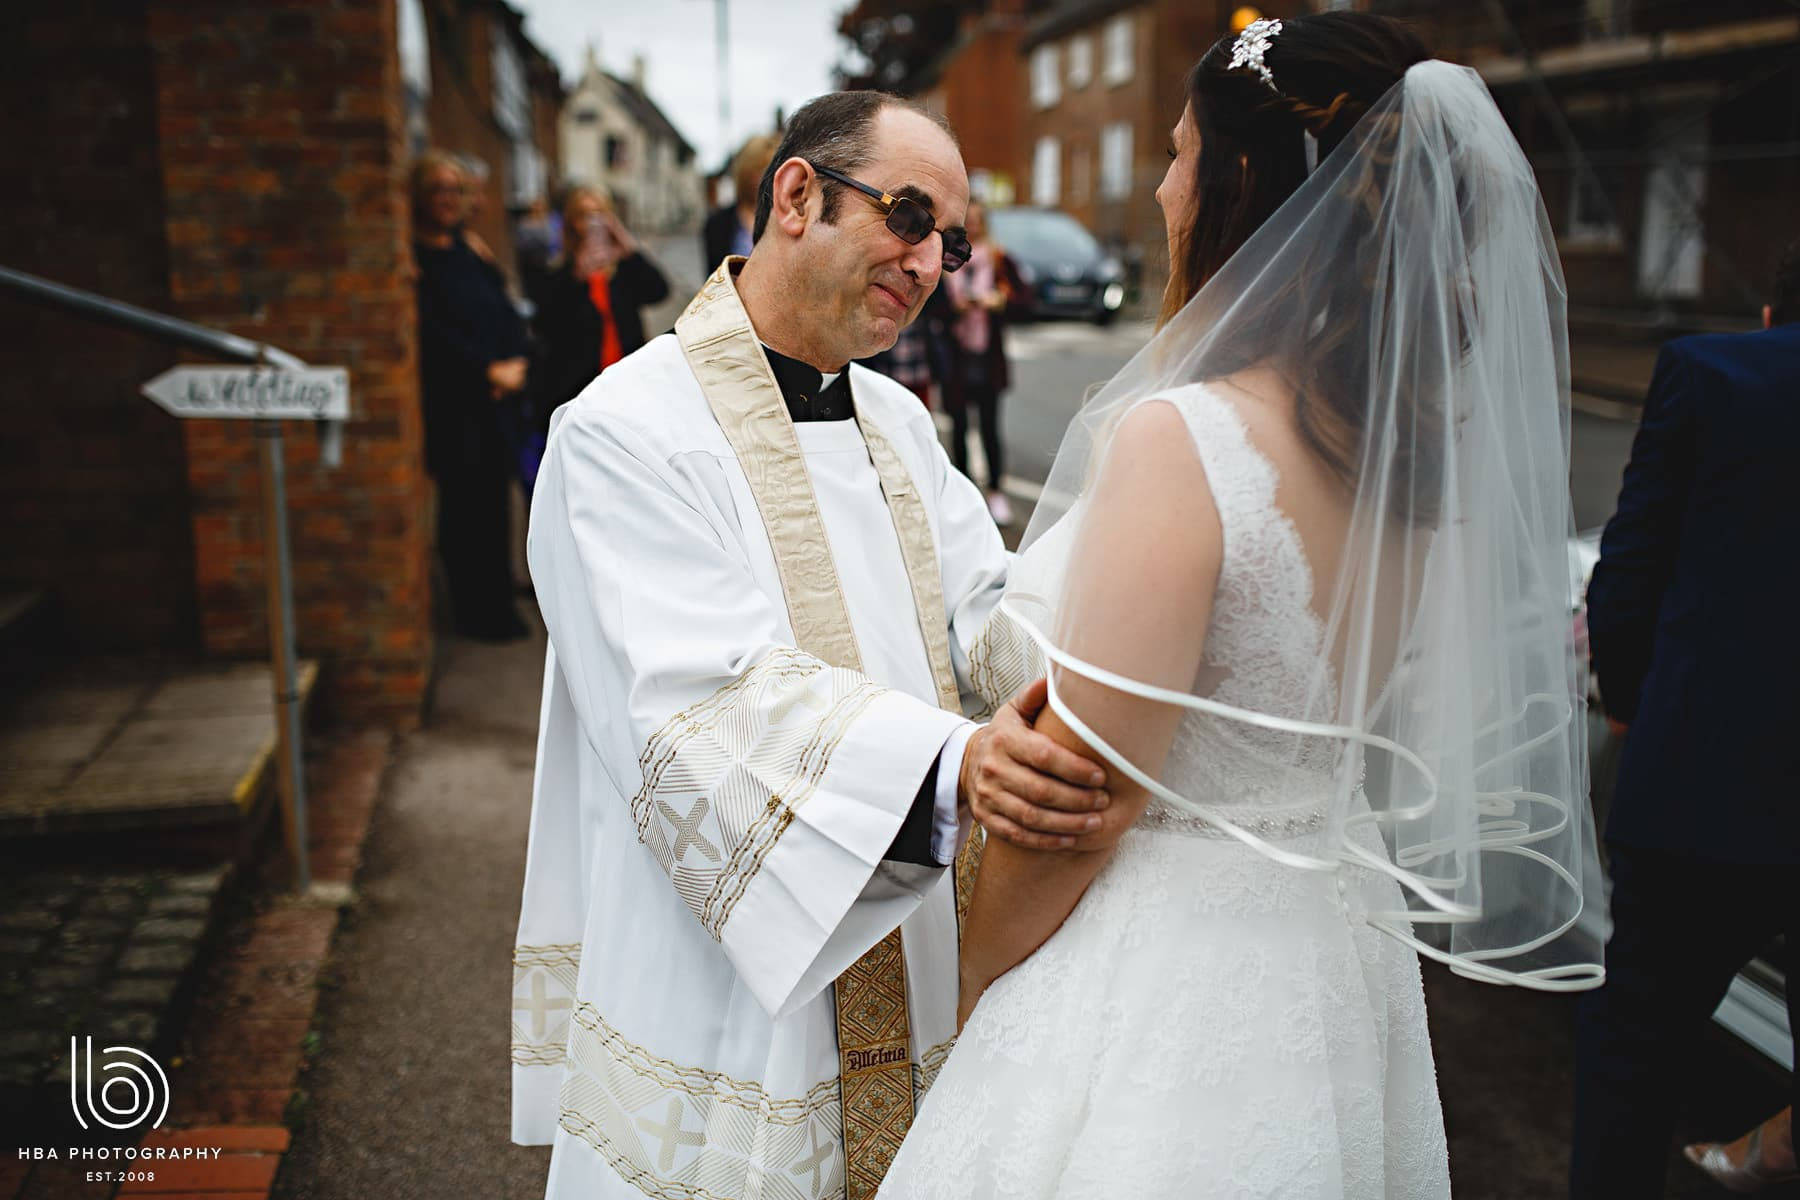 the vicar greeting the bride